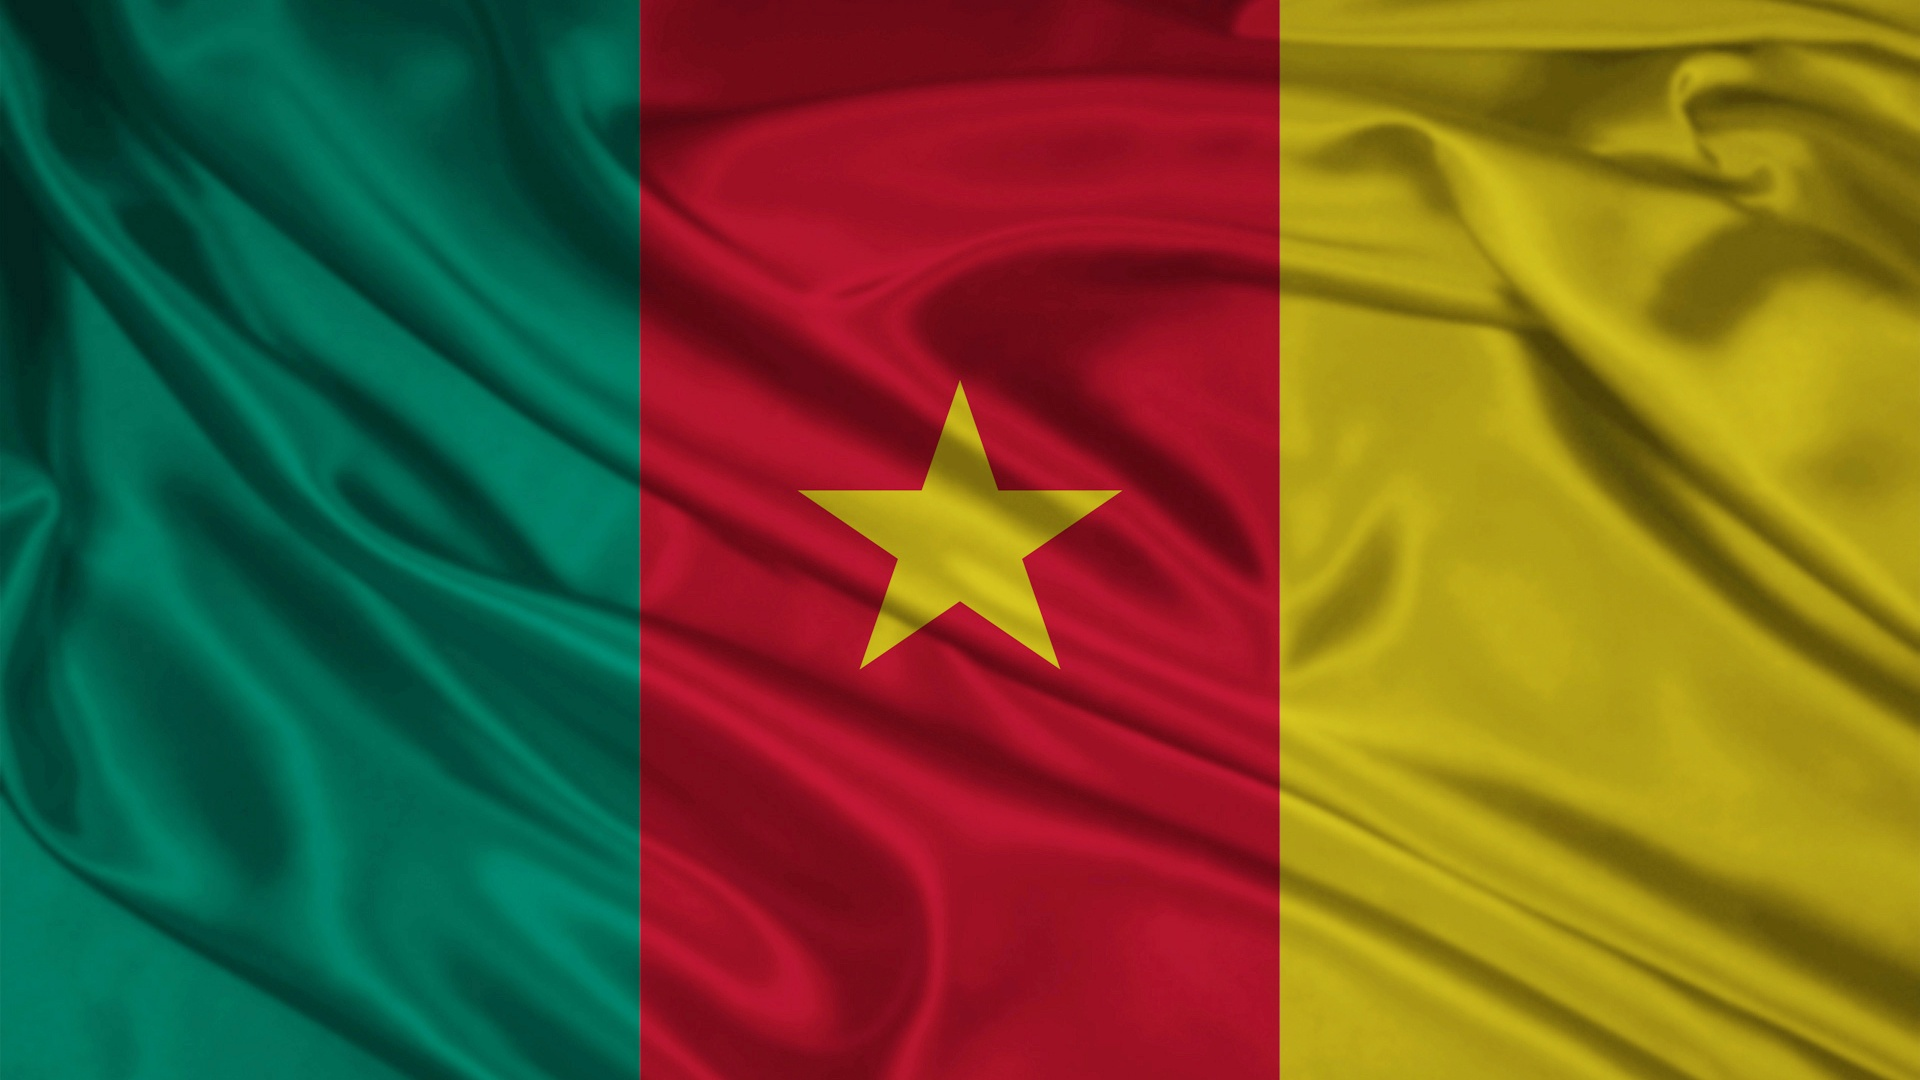 Cute Doll Wallpapers In Hd Cameroon Flag Wallpaper High Definition High Quality